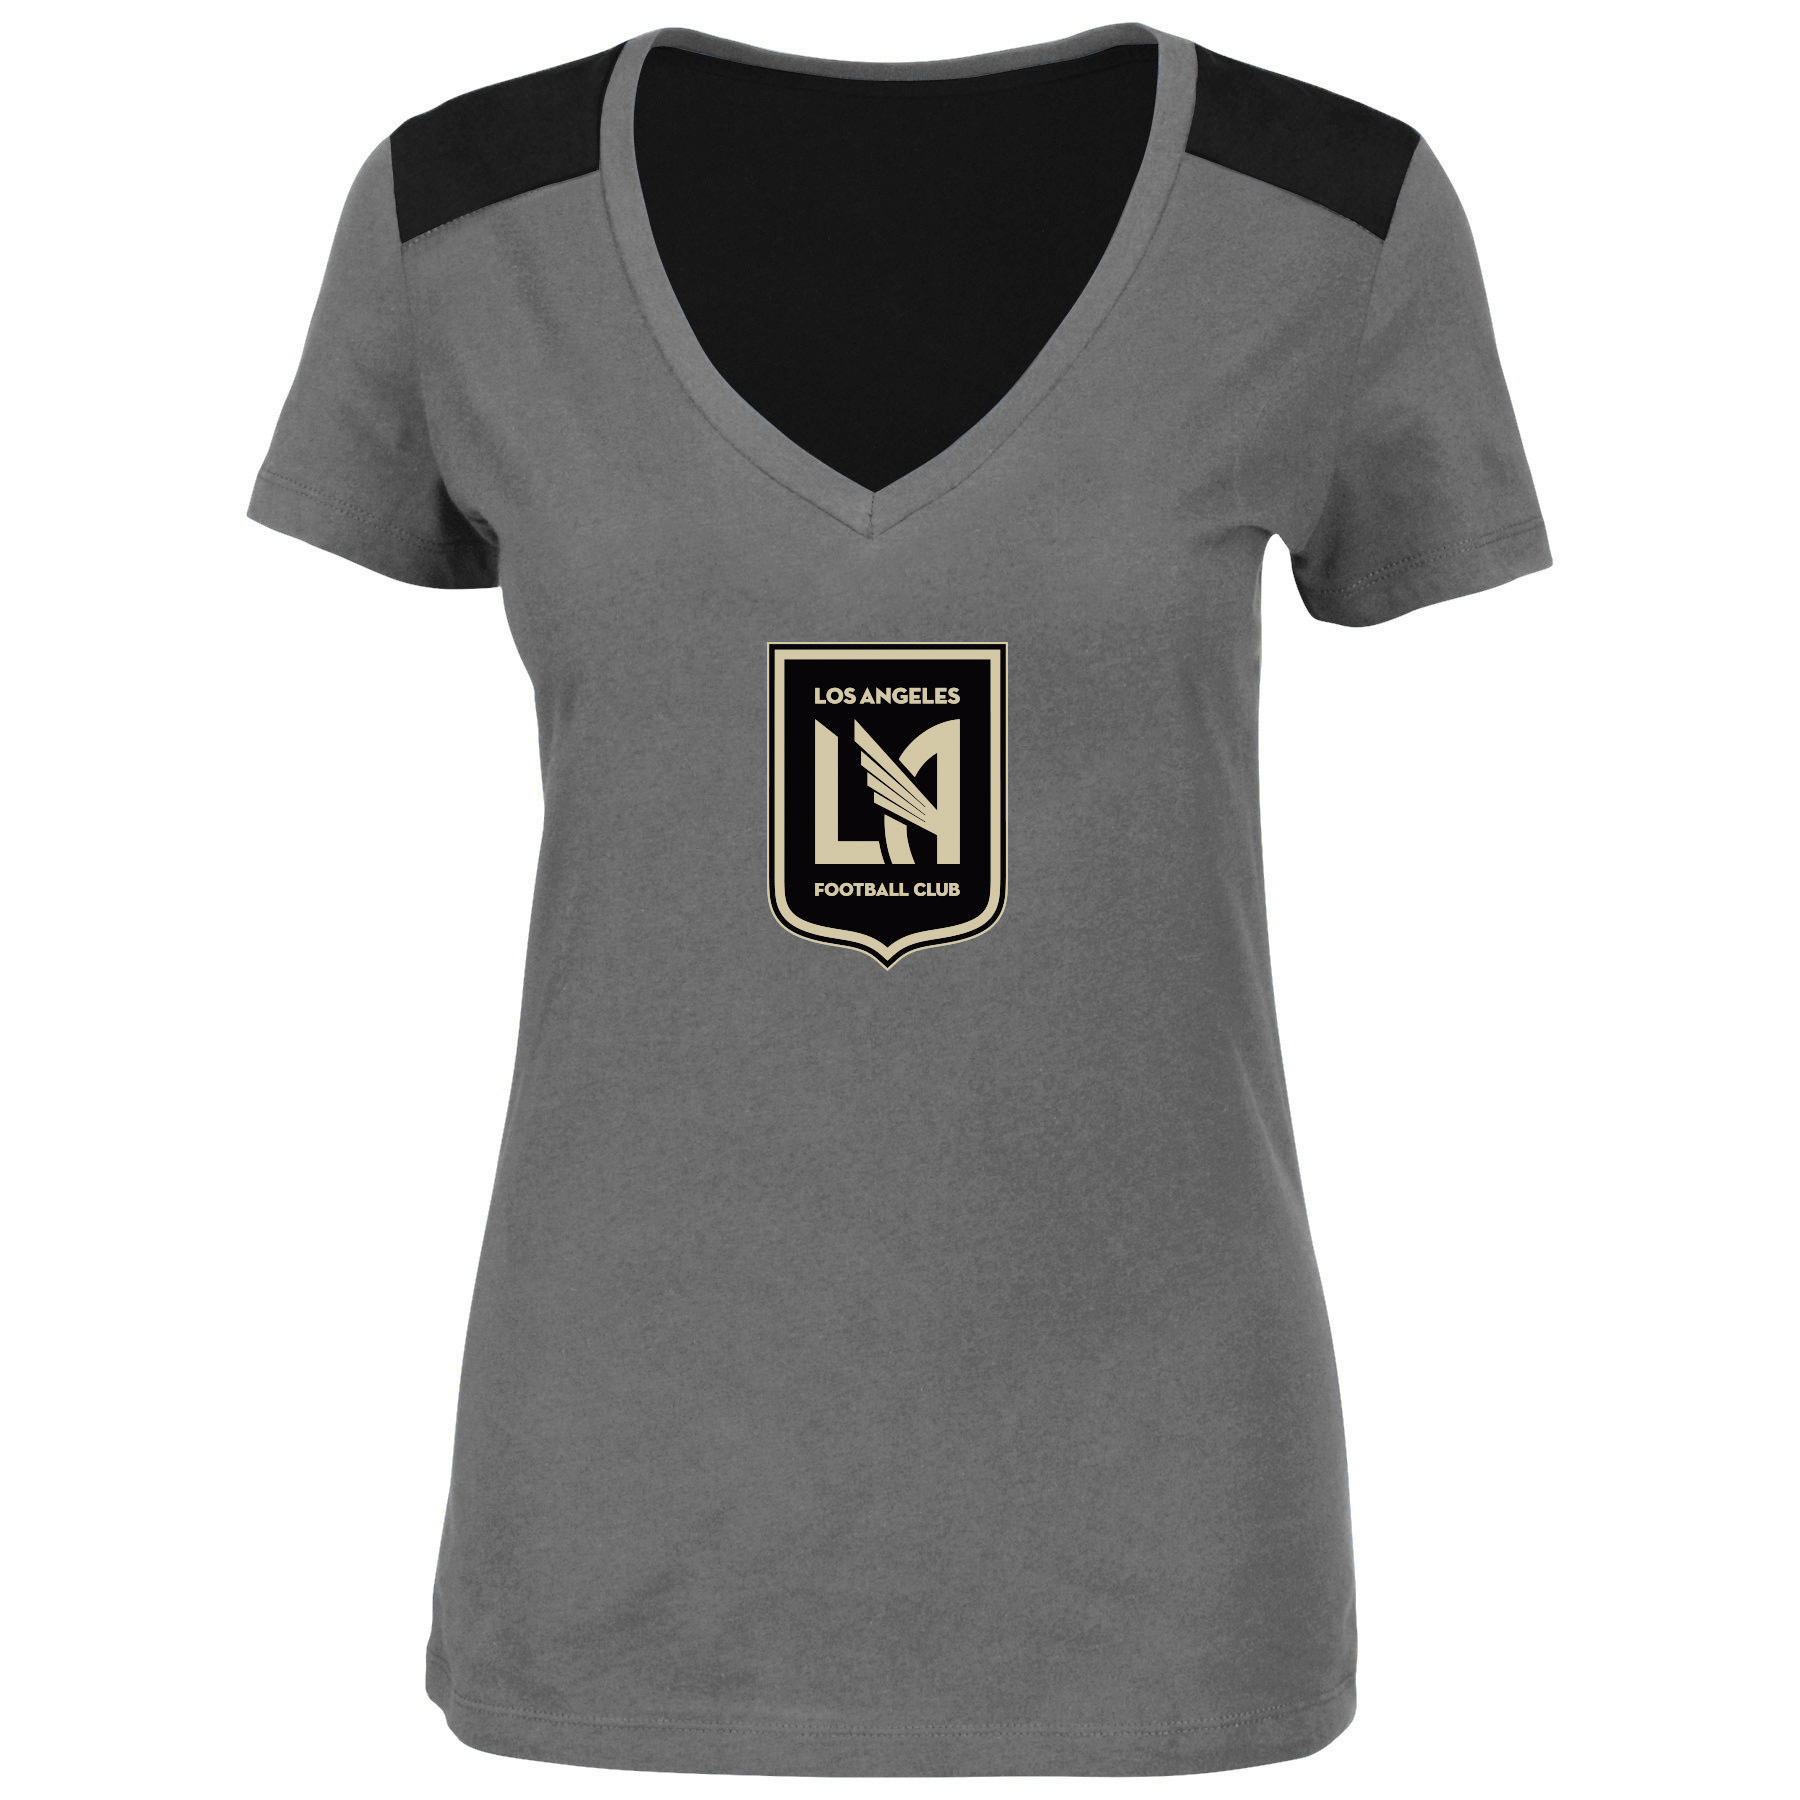 LAFC Majestic Women's V-Neck Contrast T-Shirt - Charcoal